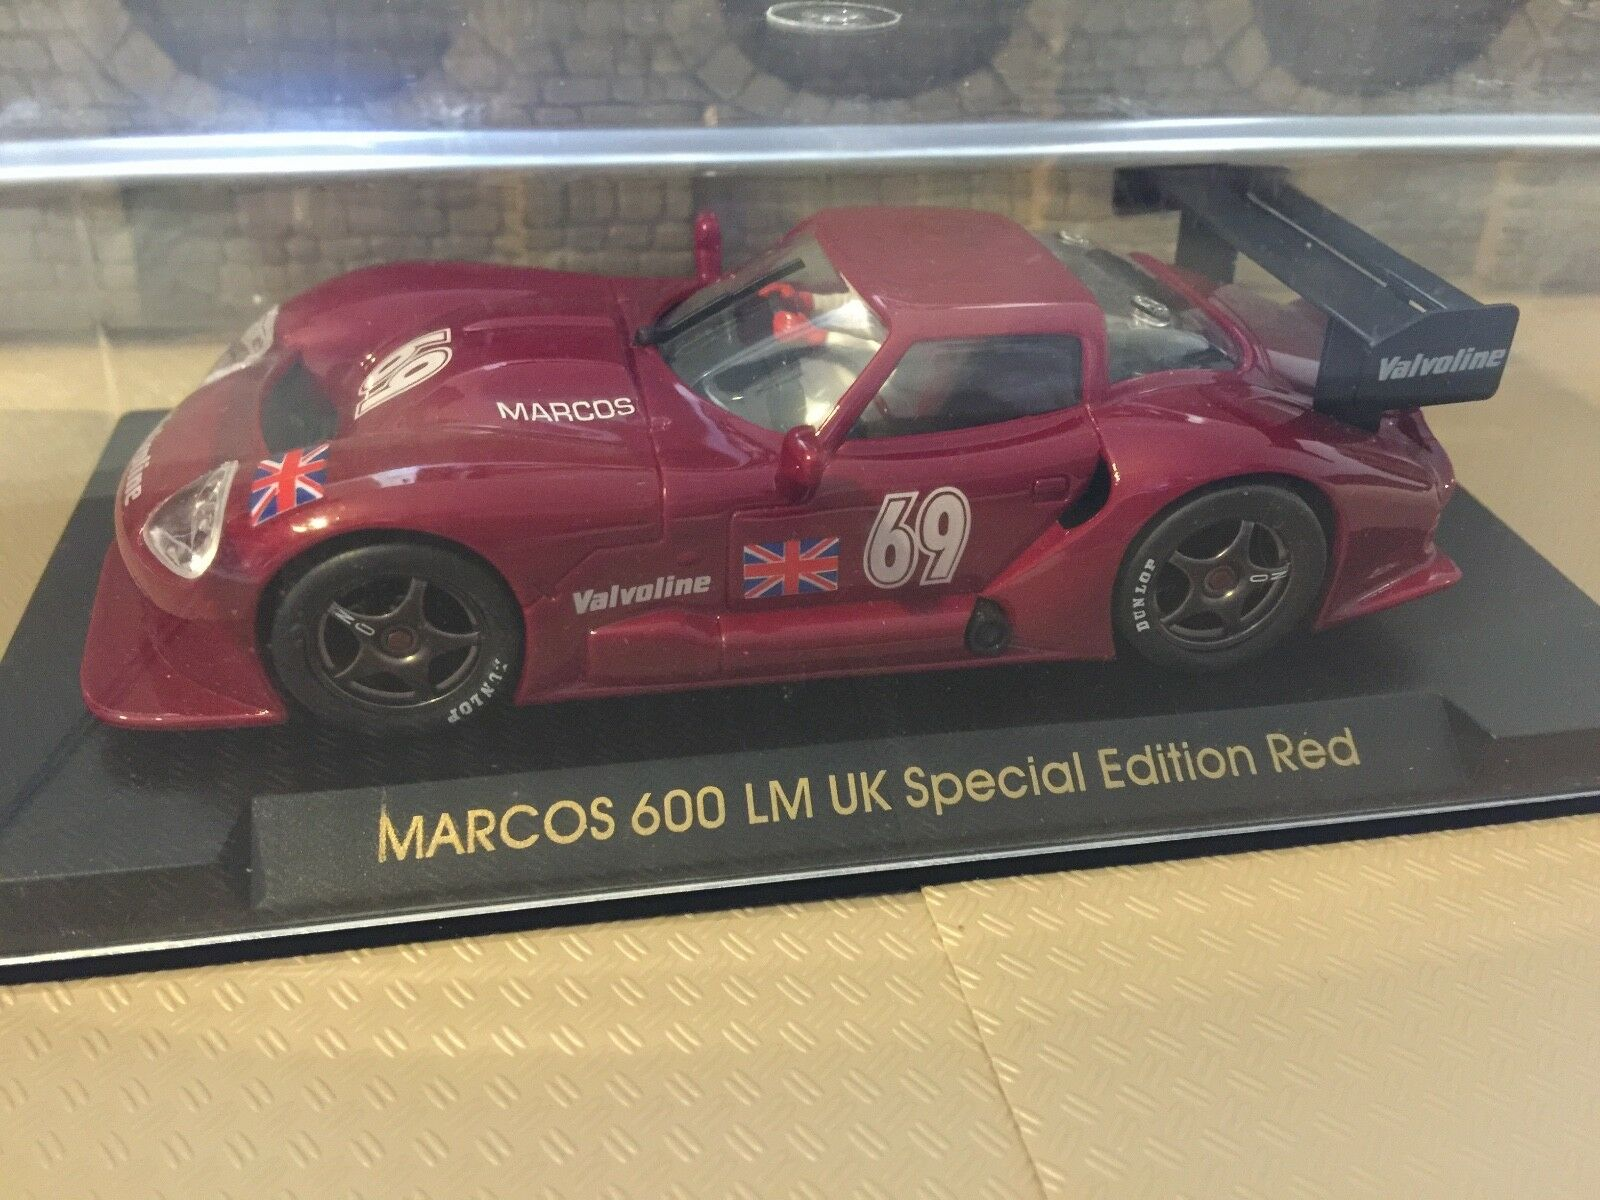 FLY Car Marcos LM UK Special Edition Red Ref. E62